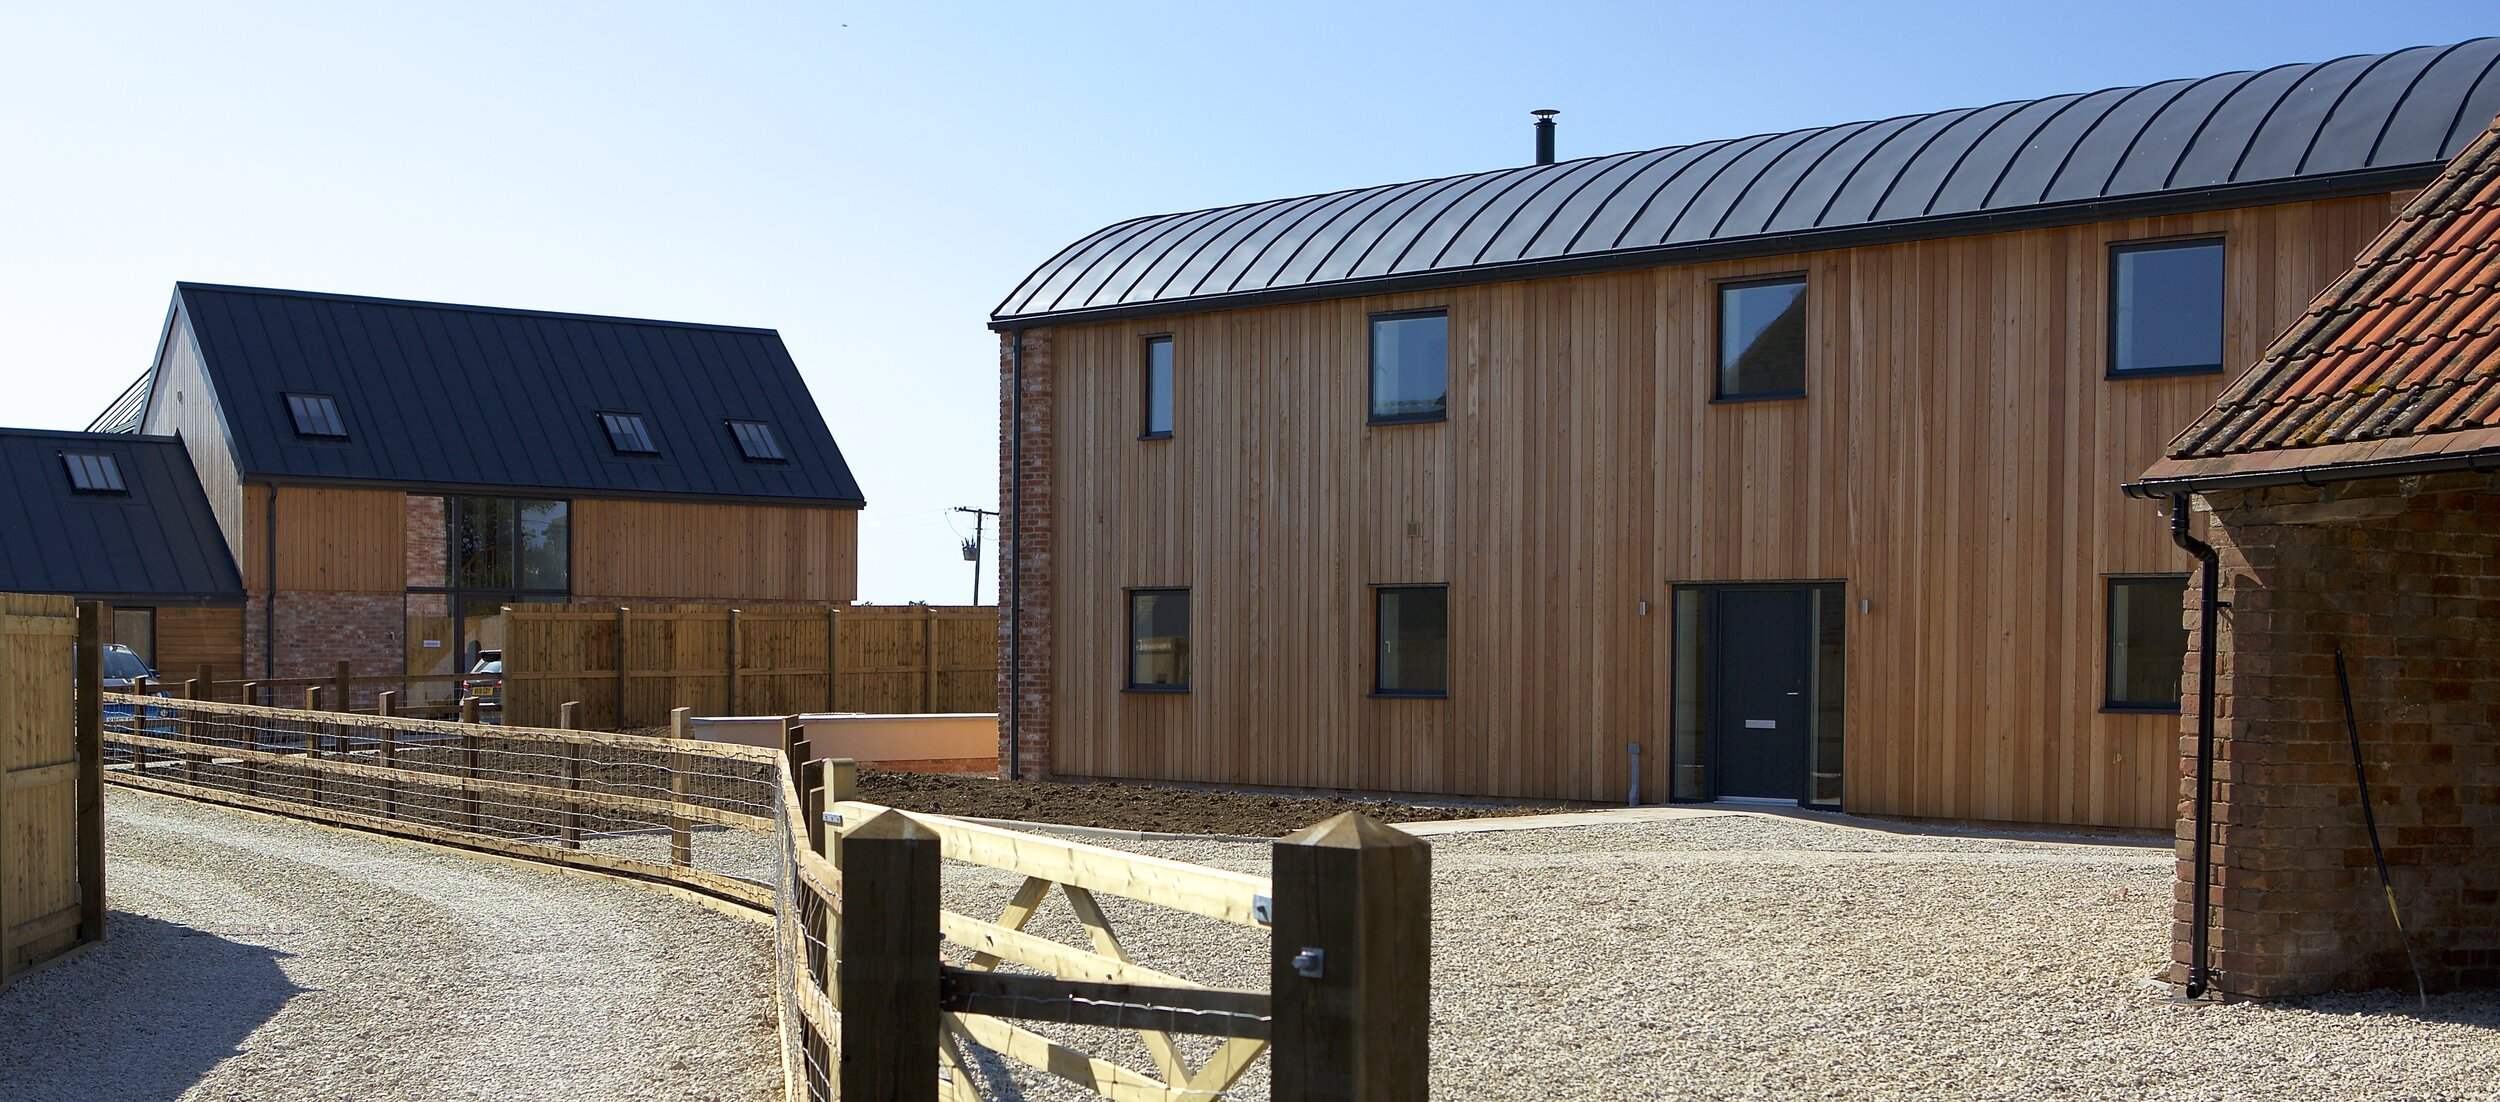 The Hog in Horsley, one of our most recent developments.